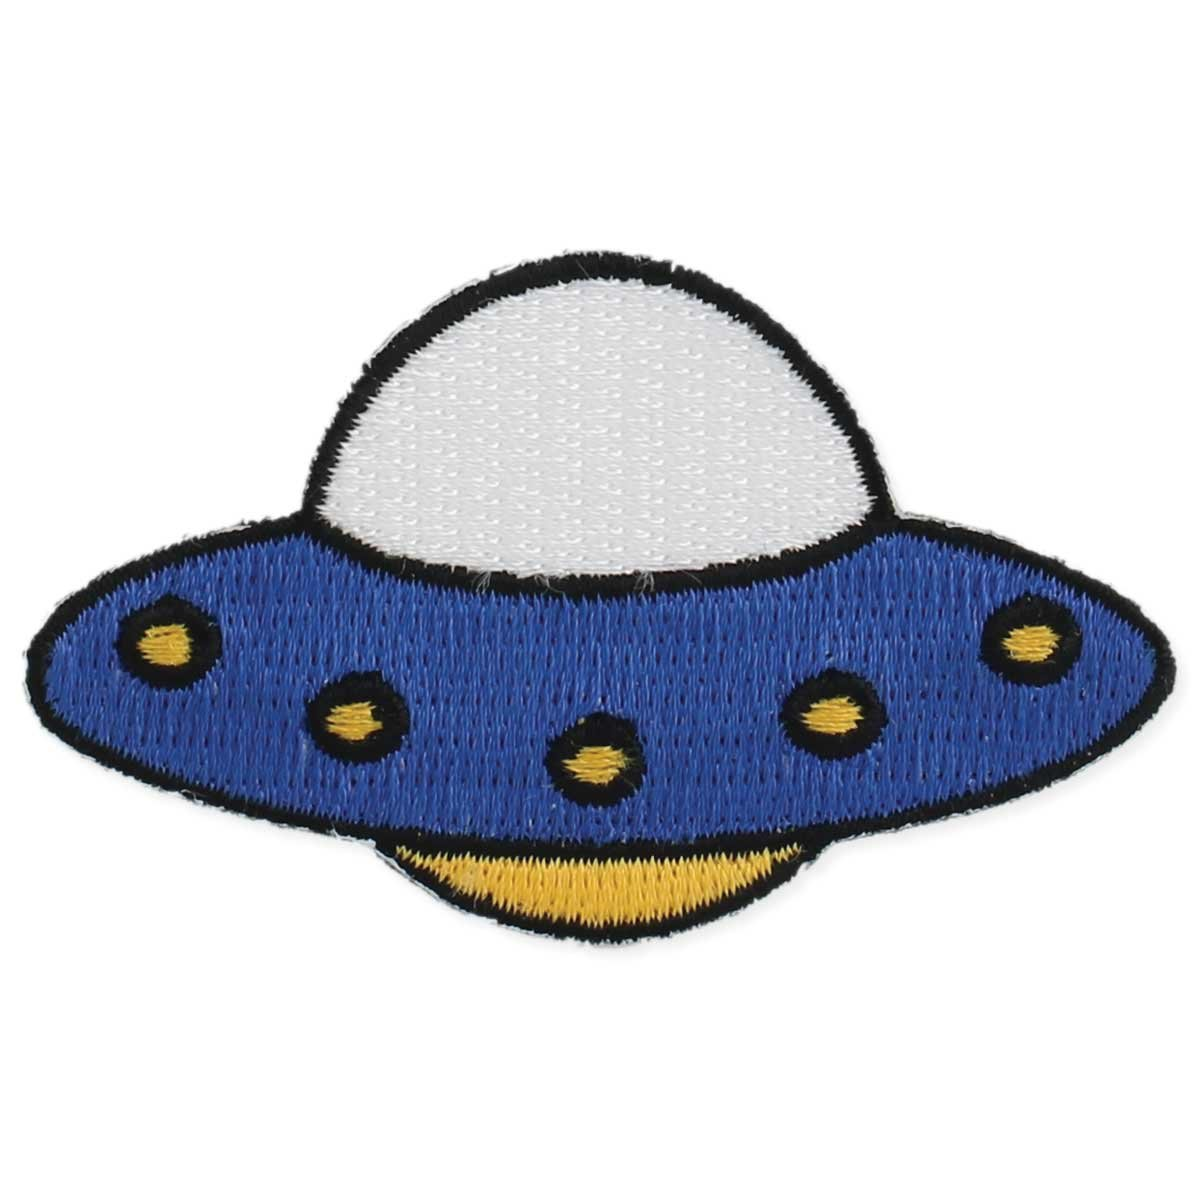 Zad Unidentified Fashion Object UFO Embroidered Iron On Patch Applique, Multi F1044